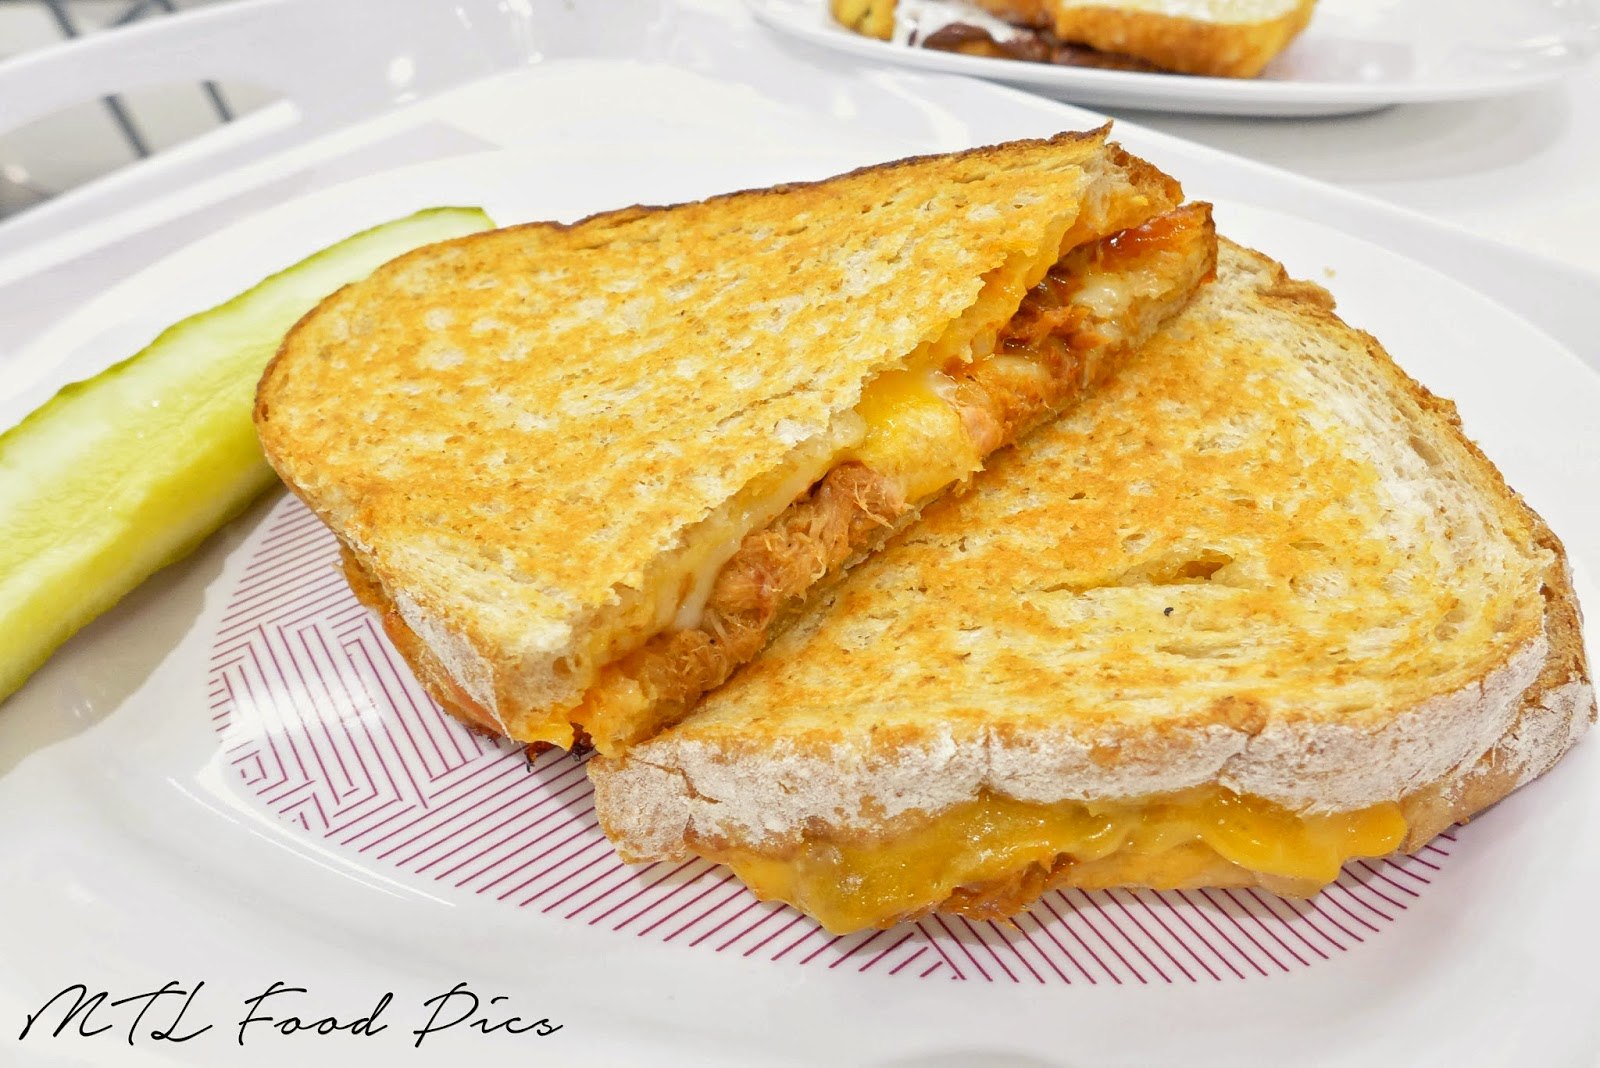 MLT DWN - Pulled Pork Grilled Cheese Sandwich